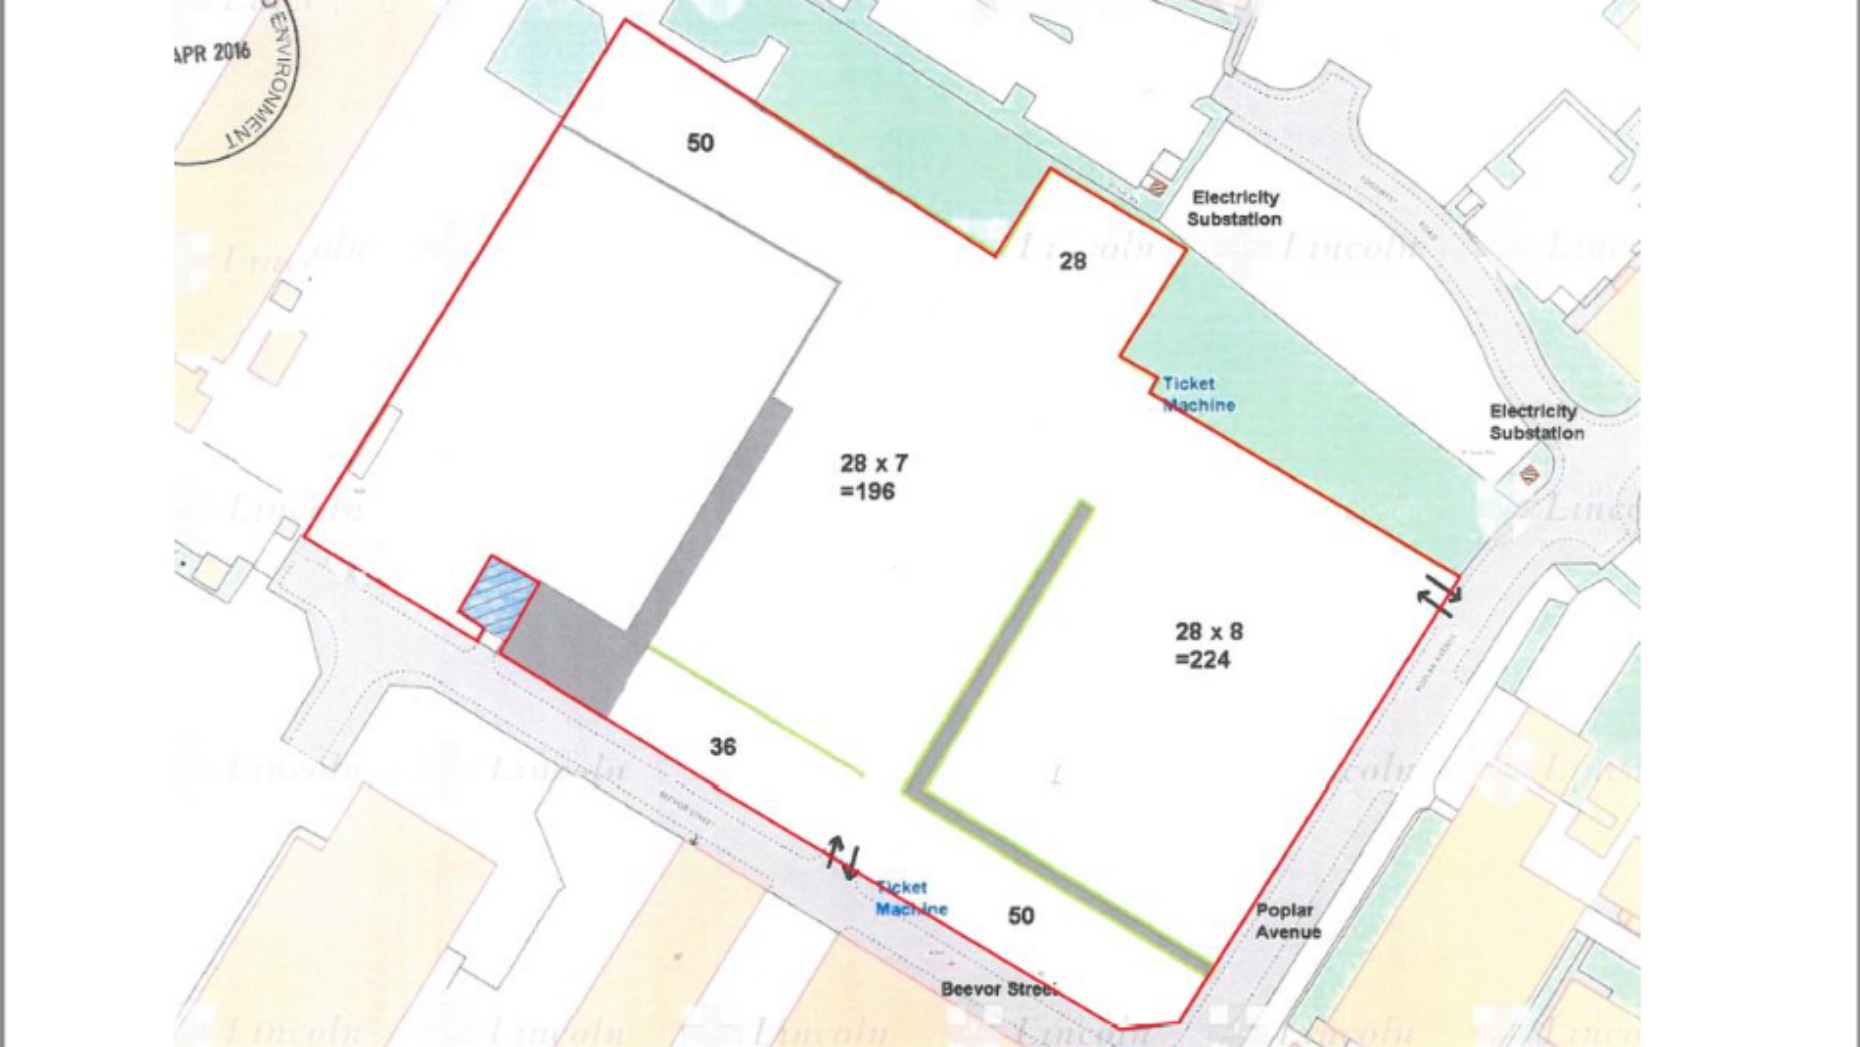 The site layout for the temporary car park bound by Beevor Street and Poplar Avenue. Photo: CoLC